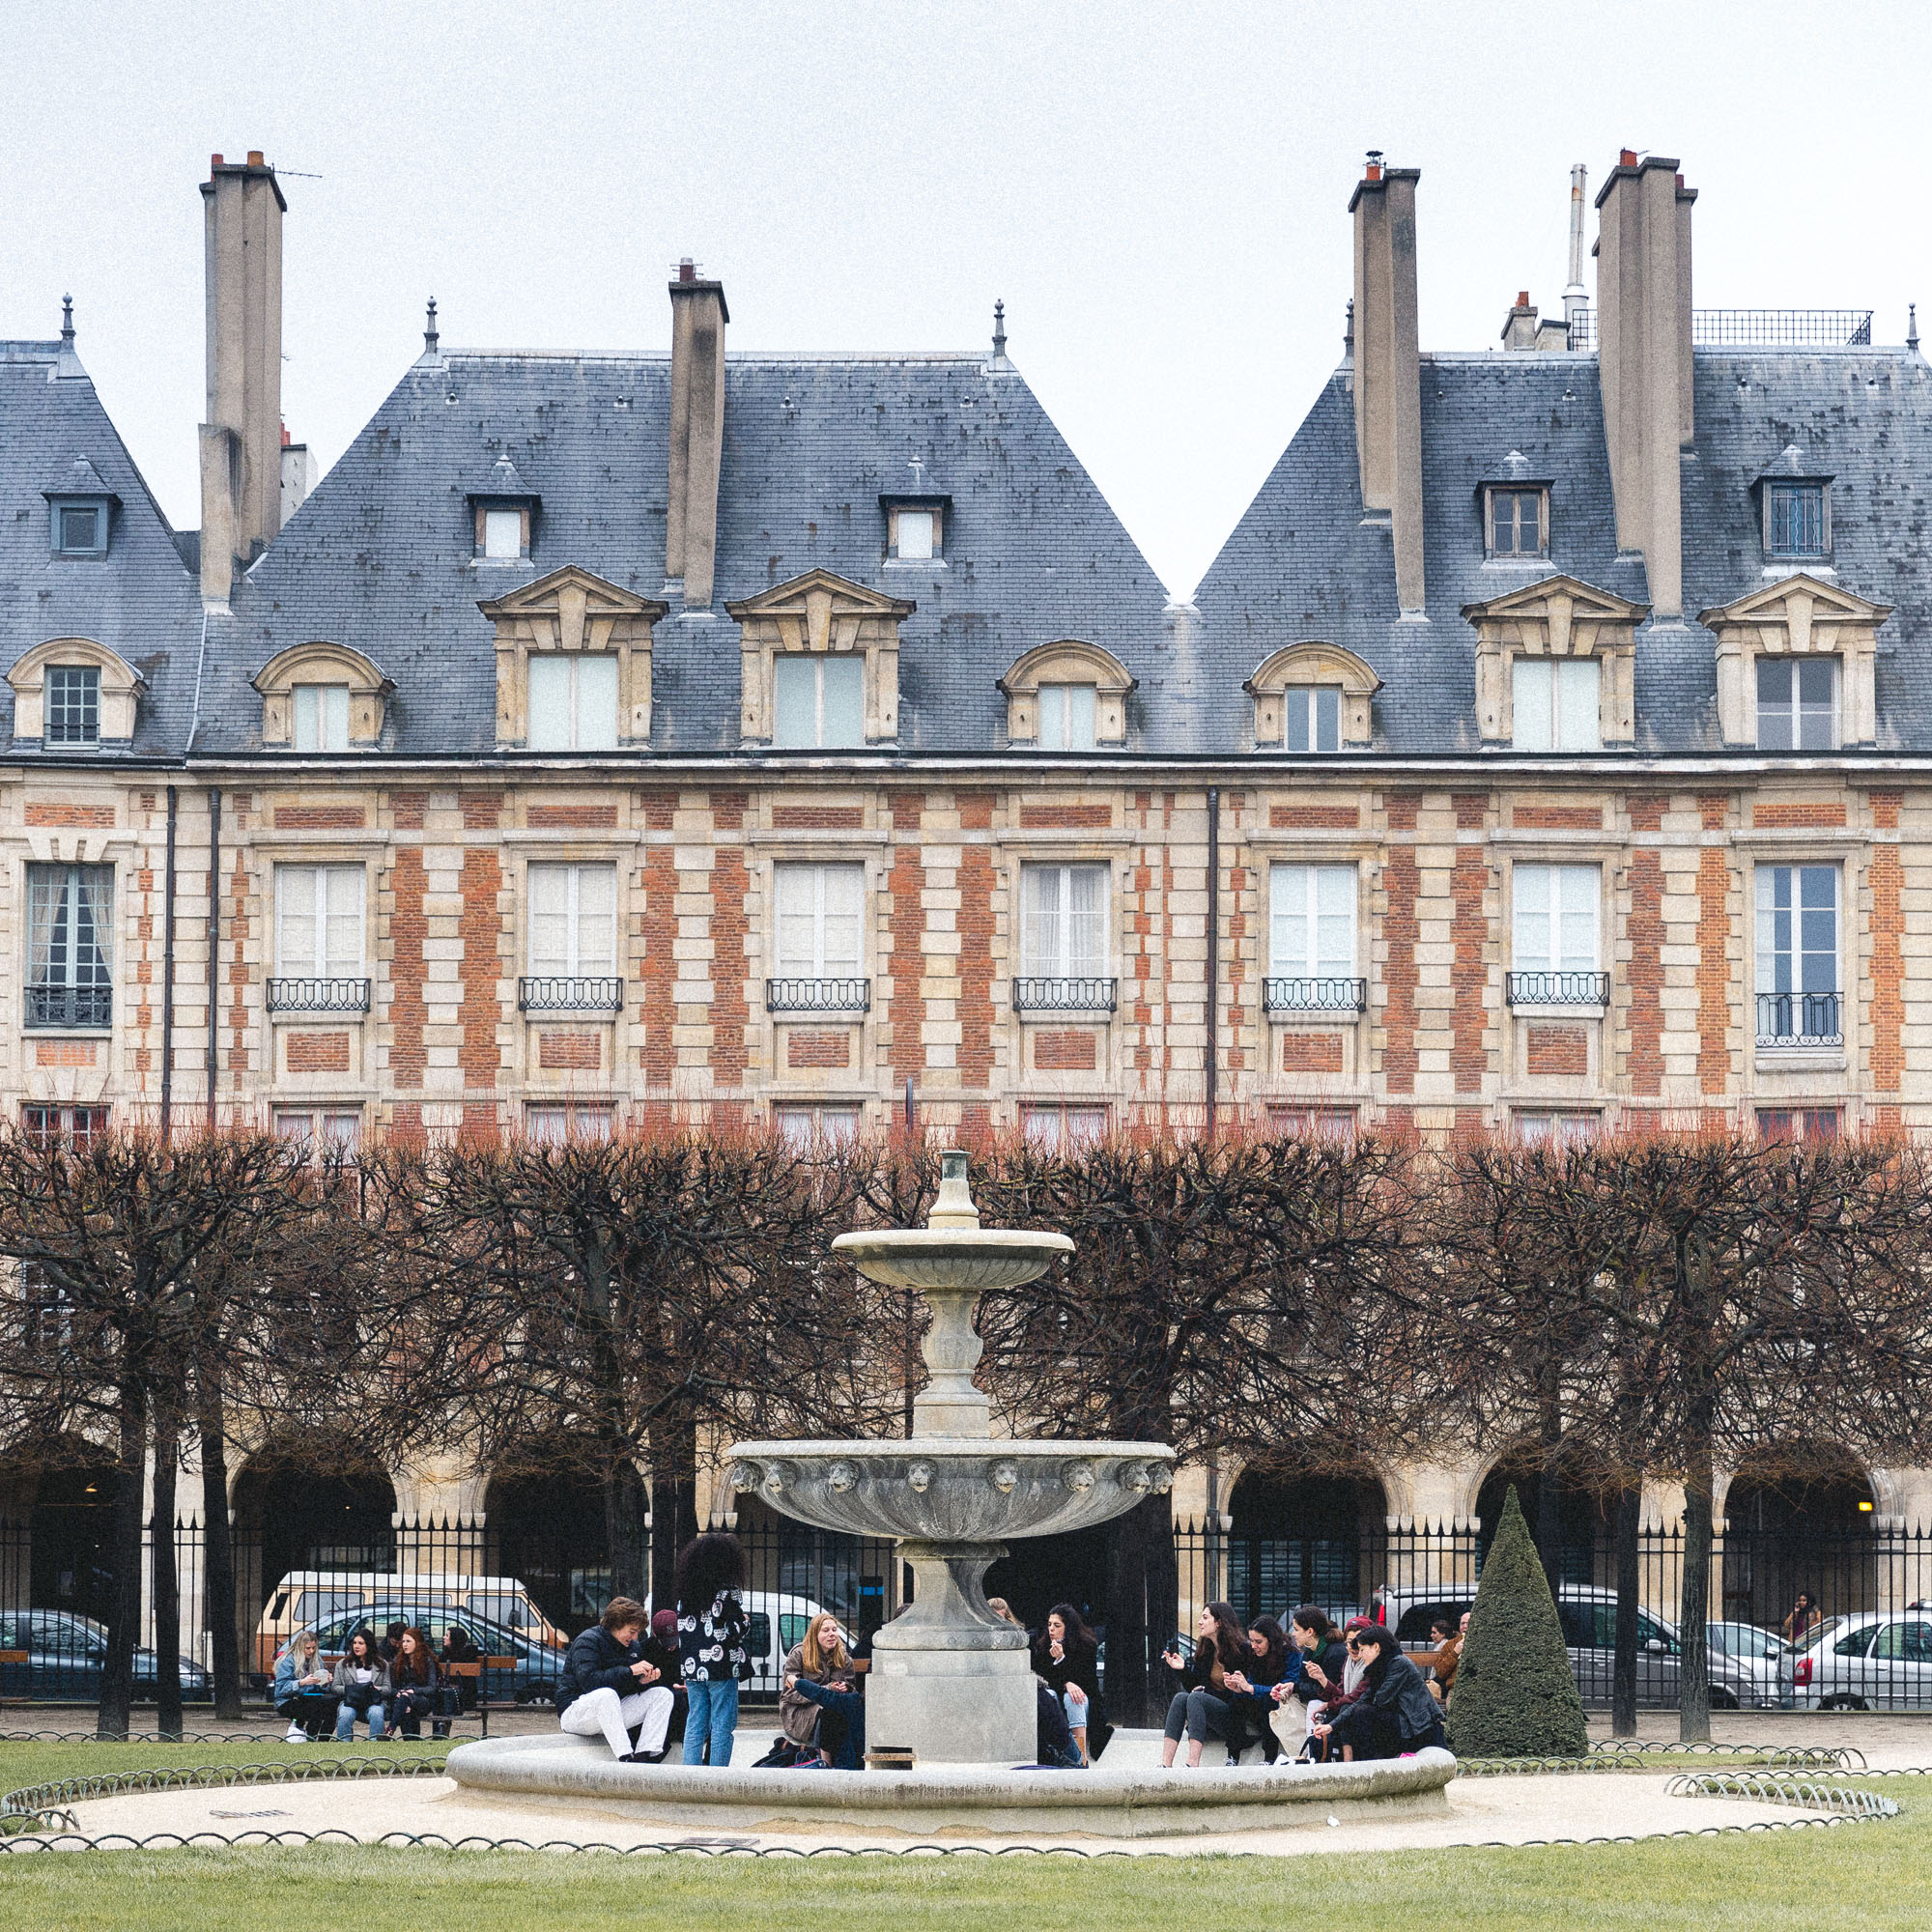 Local spots and parks in Paris - Place des Vosges in Summer - Complete Paris Travel Guide